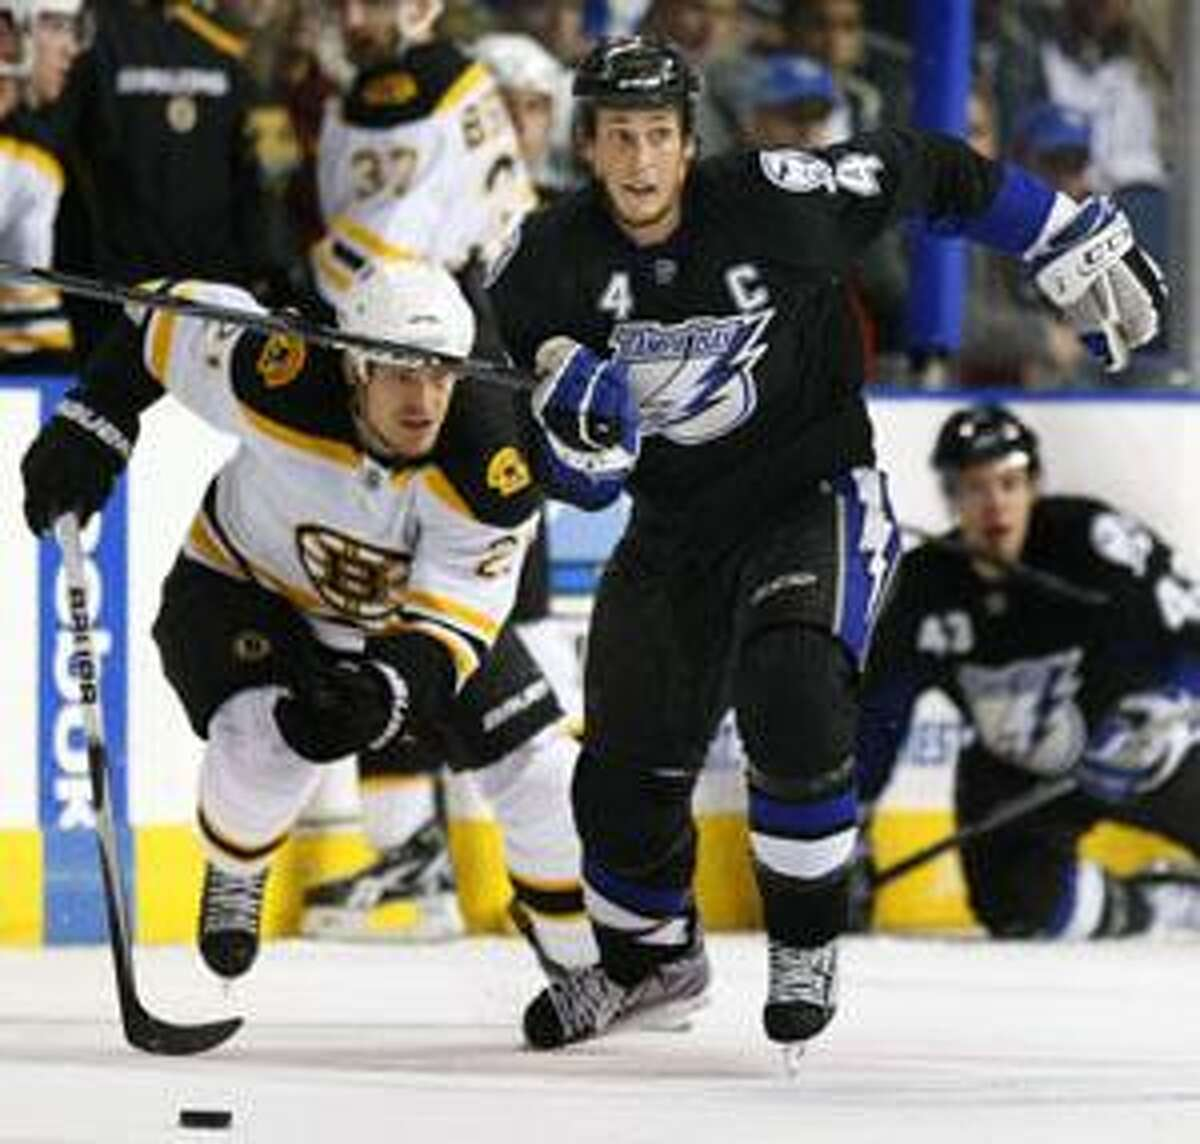 Tampa Bay Lightning center Vincent Lecavalier (4) outskates Boston Bruins defensmen Andrew Ference (21) to the puck during the second period Monday in Tampa, Fla. The Lightning defeated the Bruins 2-1.